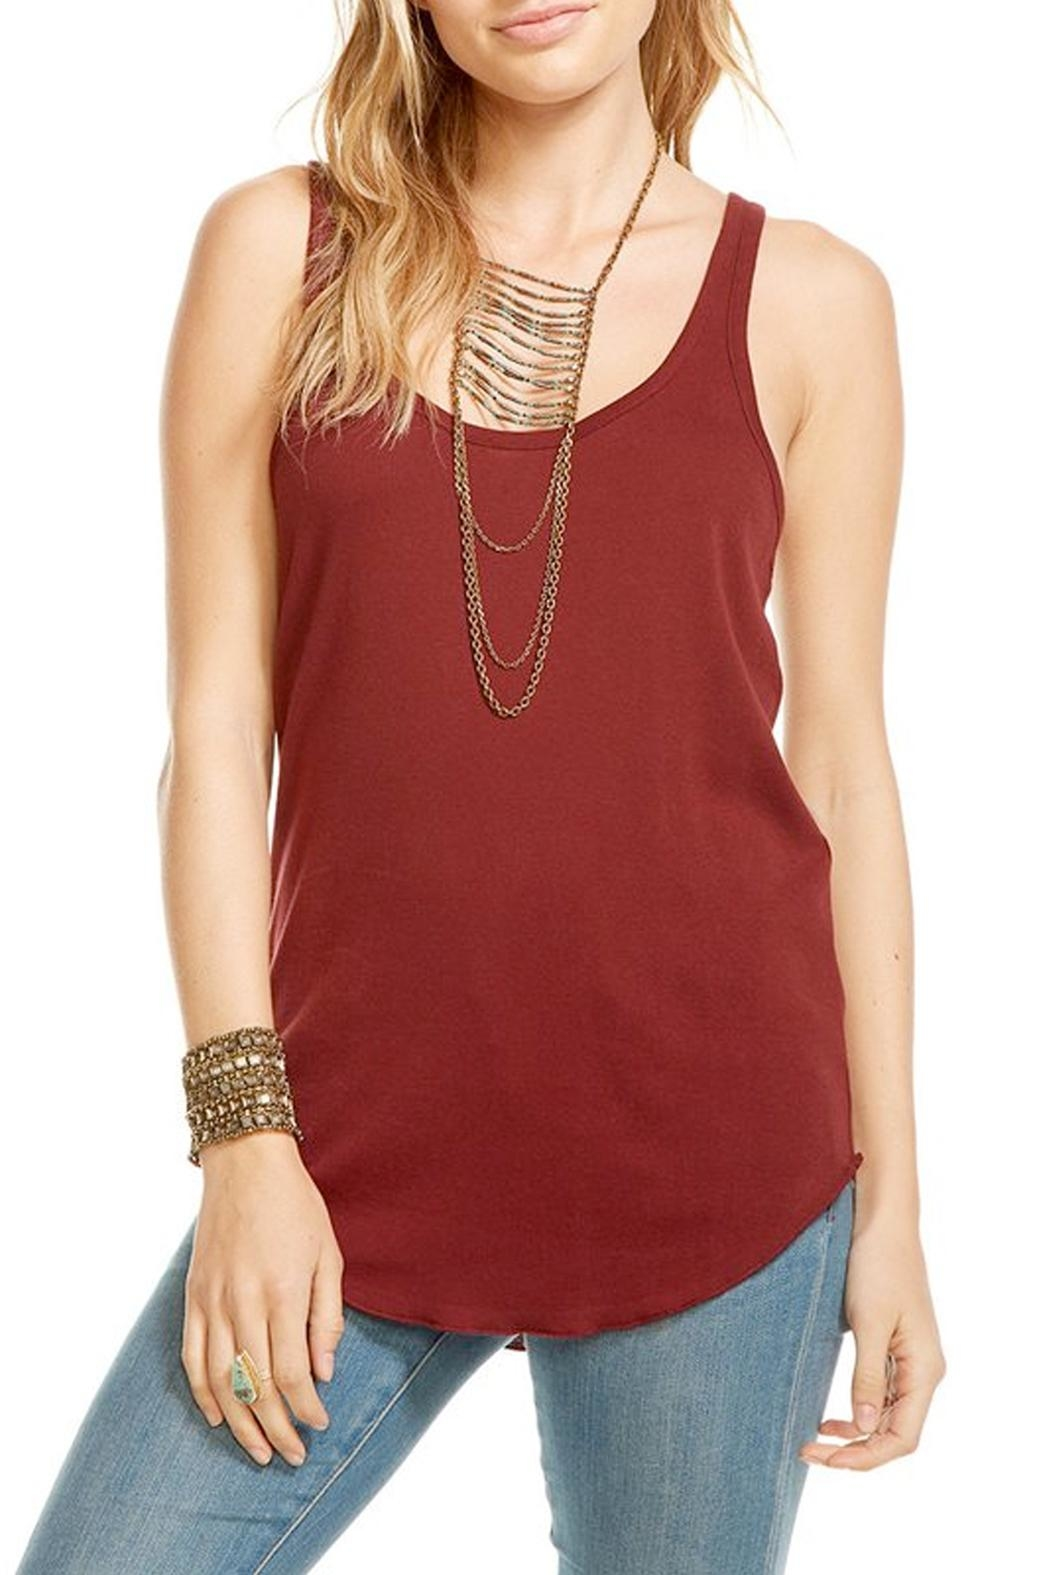 Chaser Ruby Racerback Tank Top - Main Image